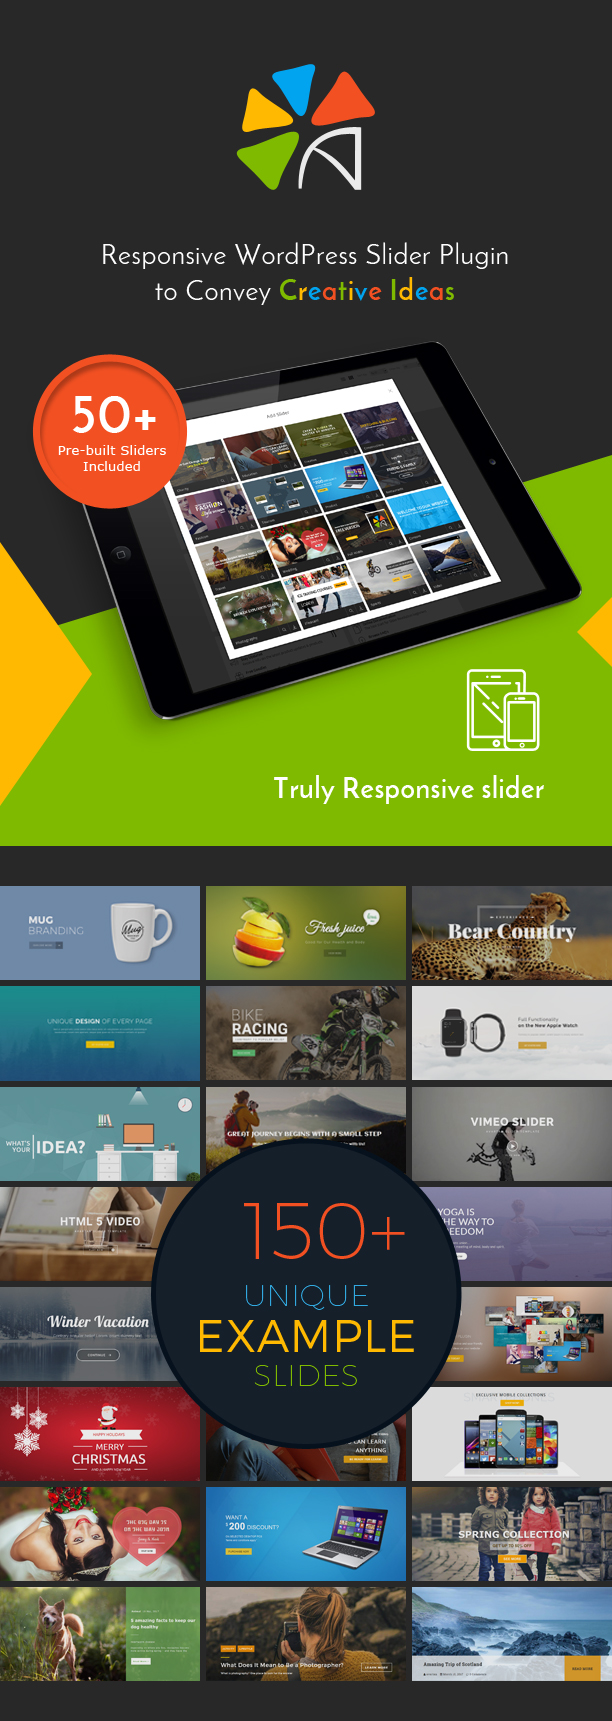 Avartan Slider - Responsive WordPress Slider Plugin 1